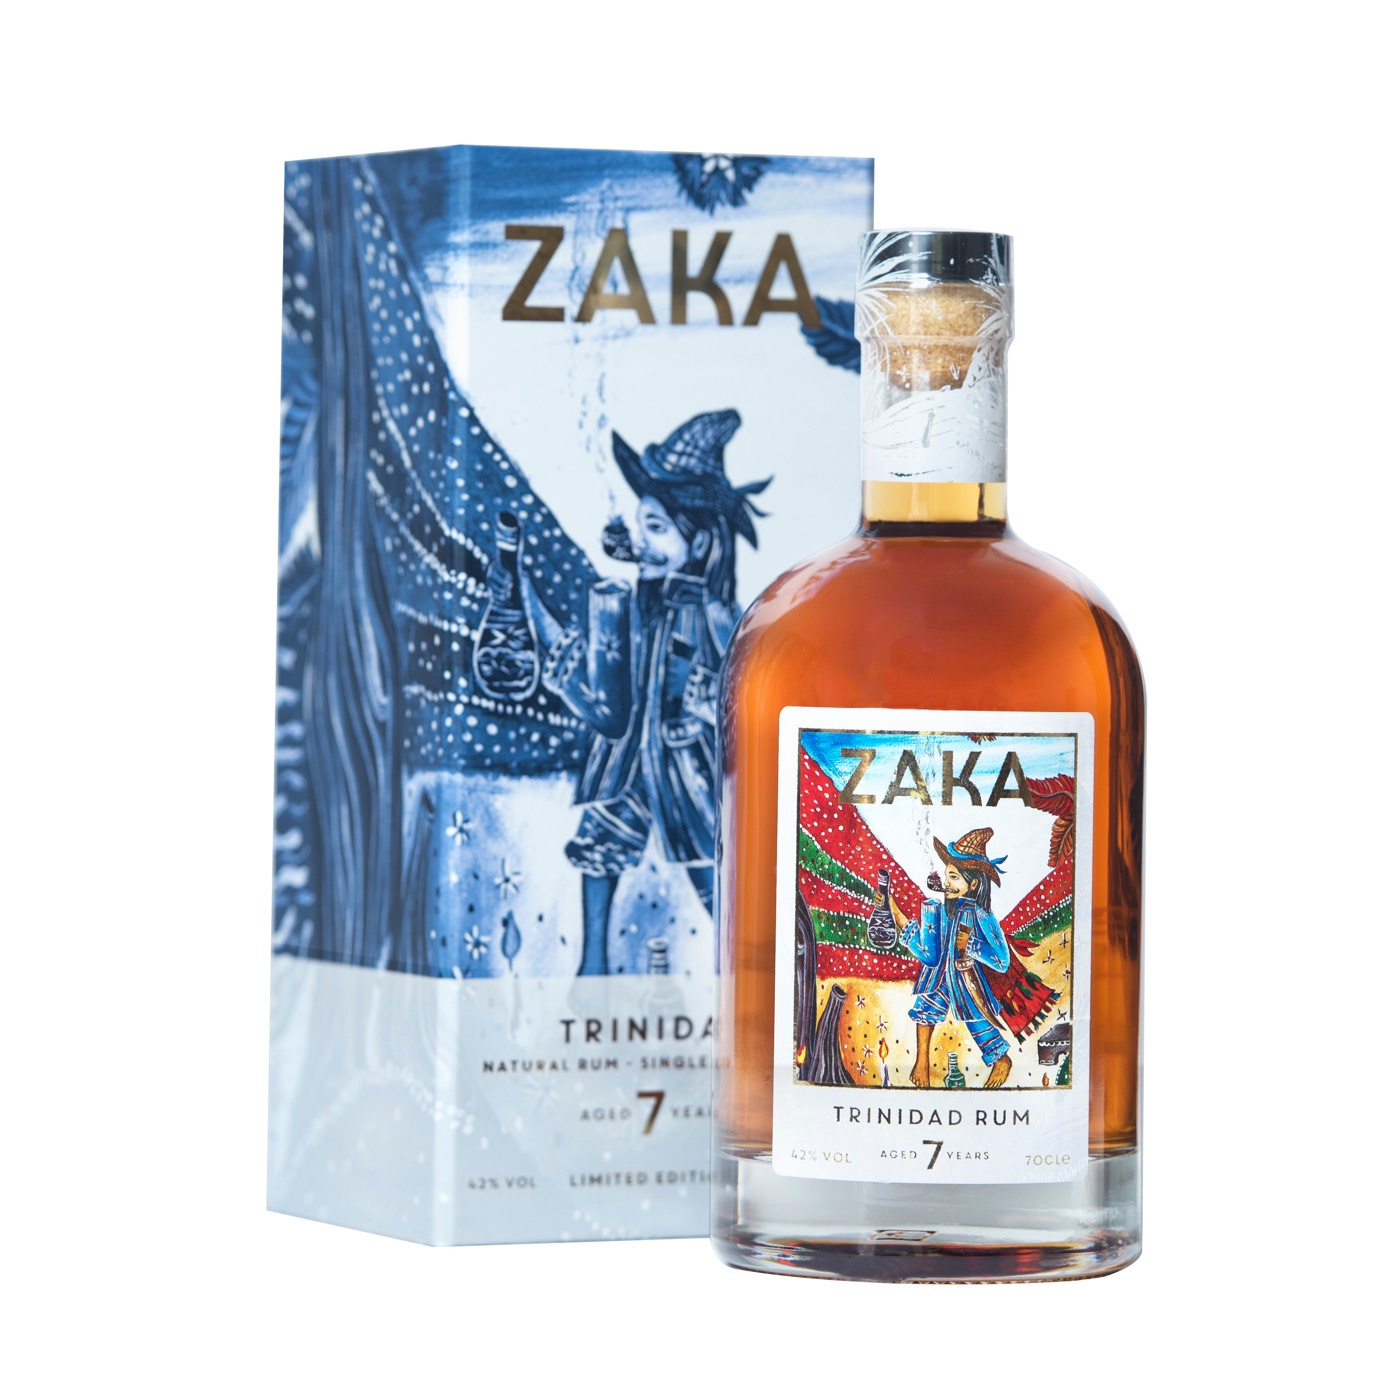 Bottle image of Zaka Trinidad